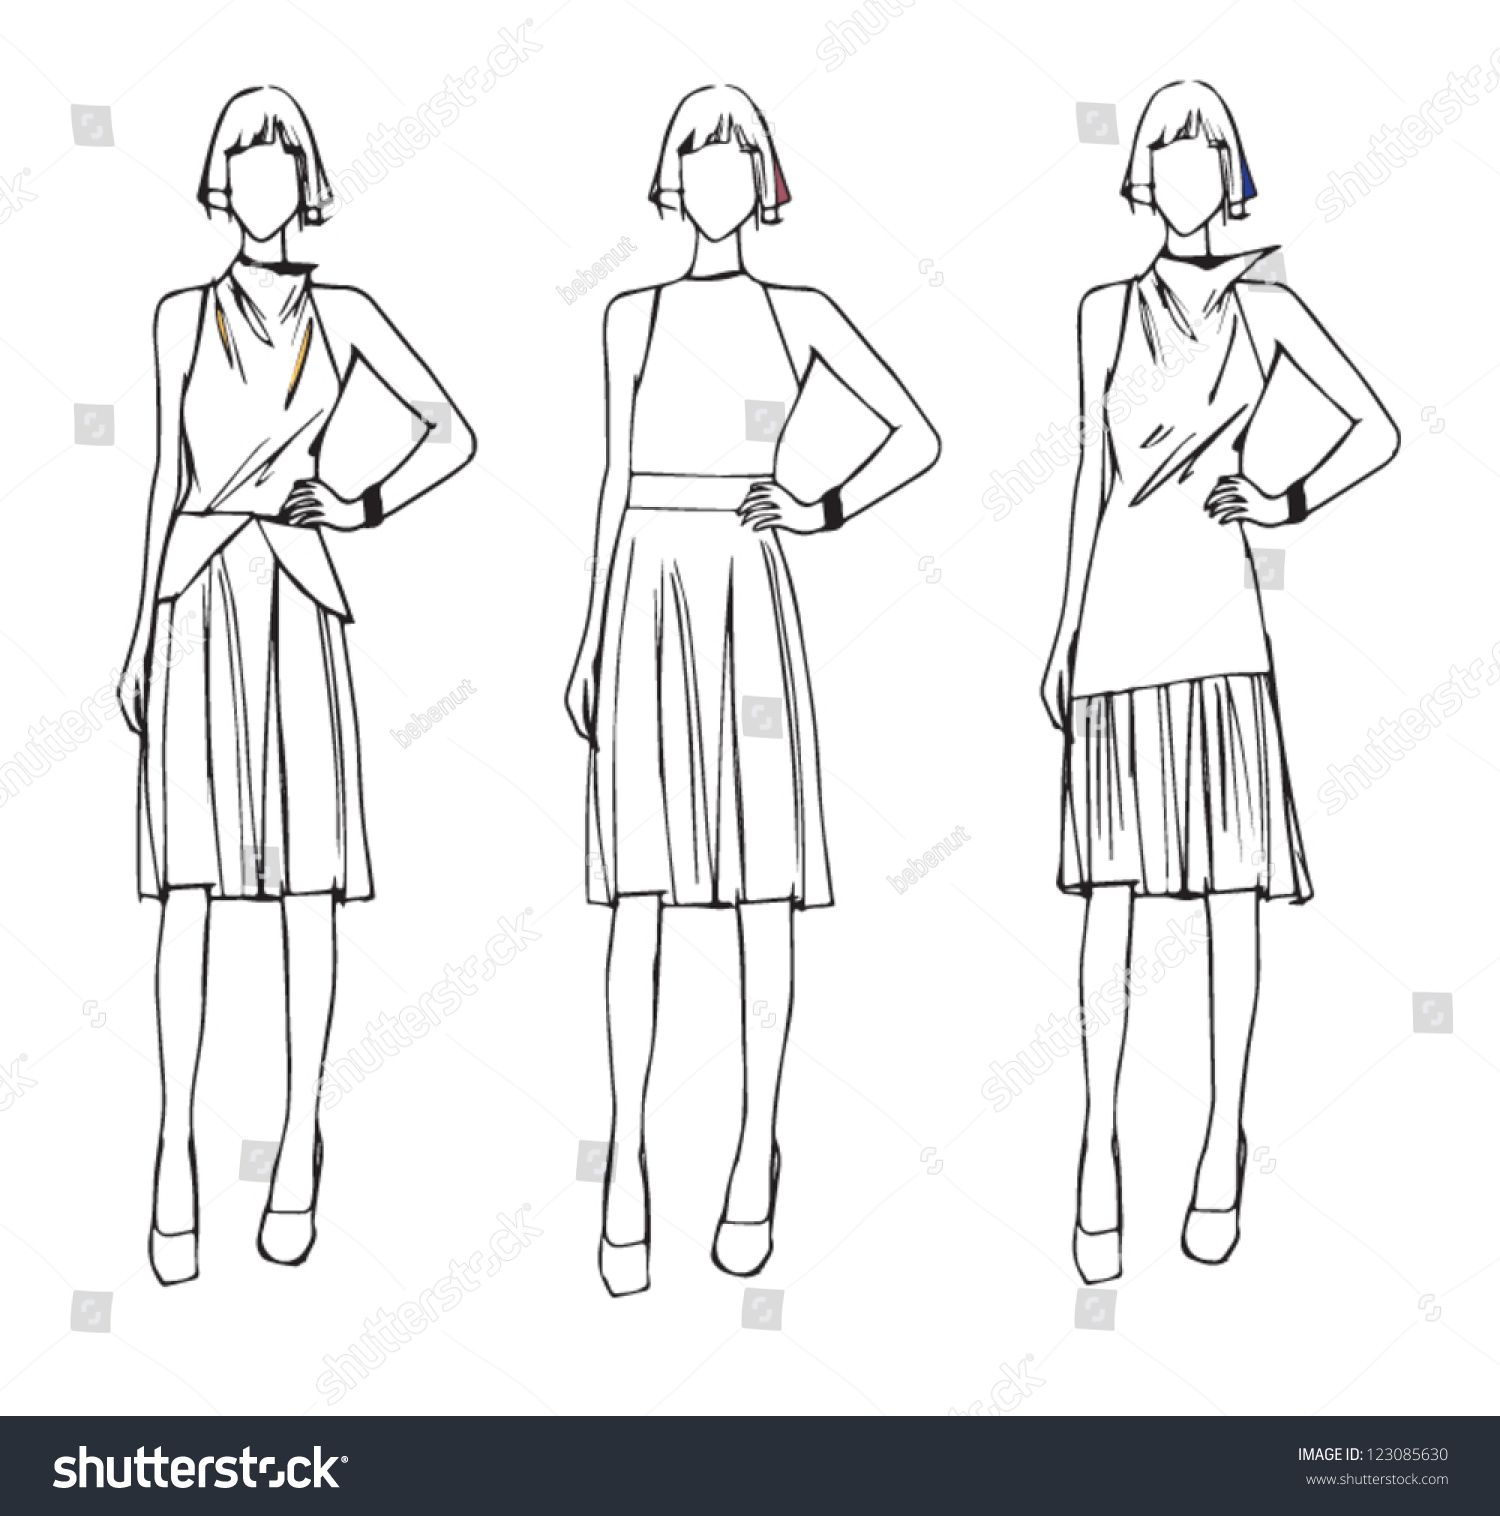 Fashion Sketch Design Elegance Style Stock Vector 123085630 Shutterstock